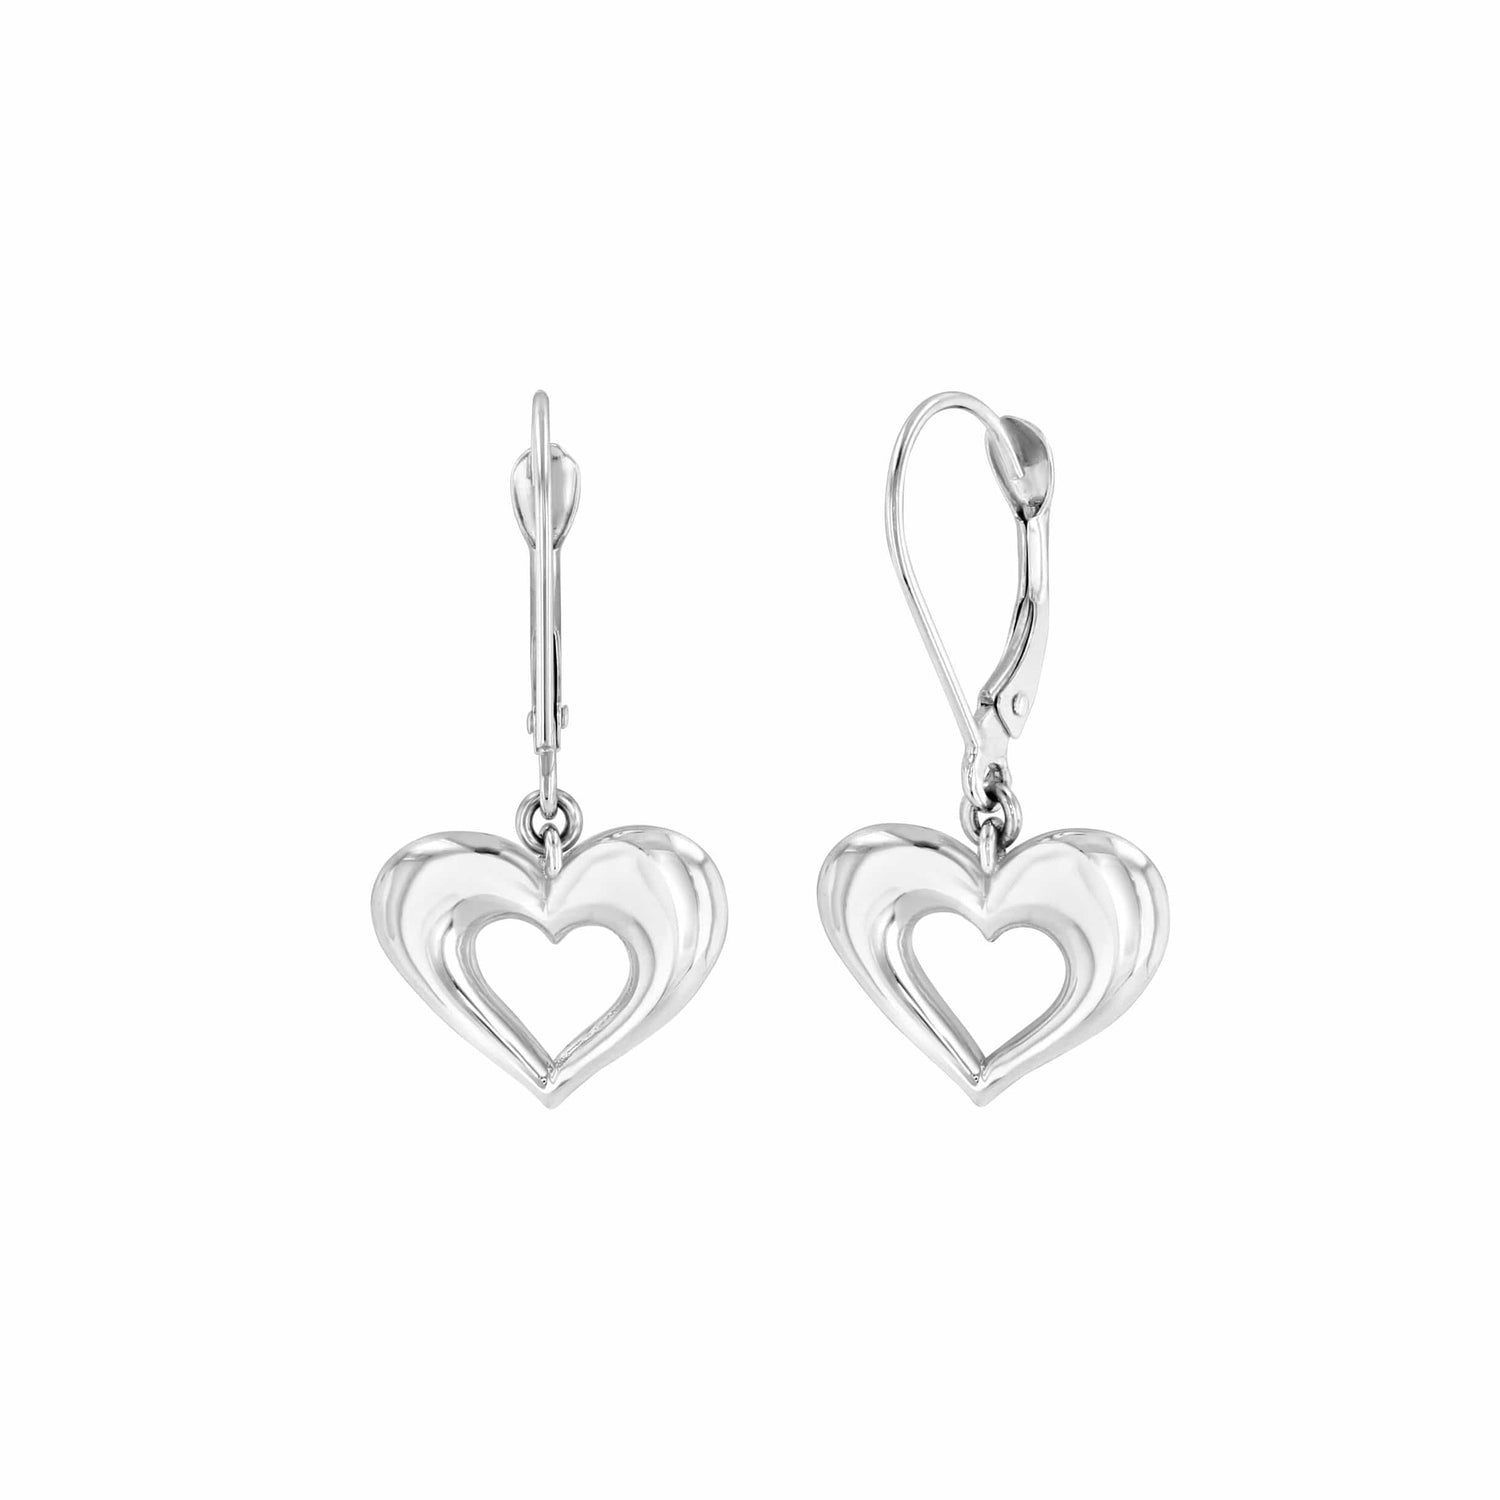 Dangle Earrings White Gold Hearts Elizabeth Jane Atelier